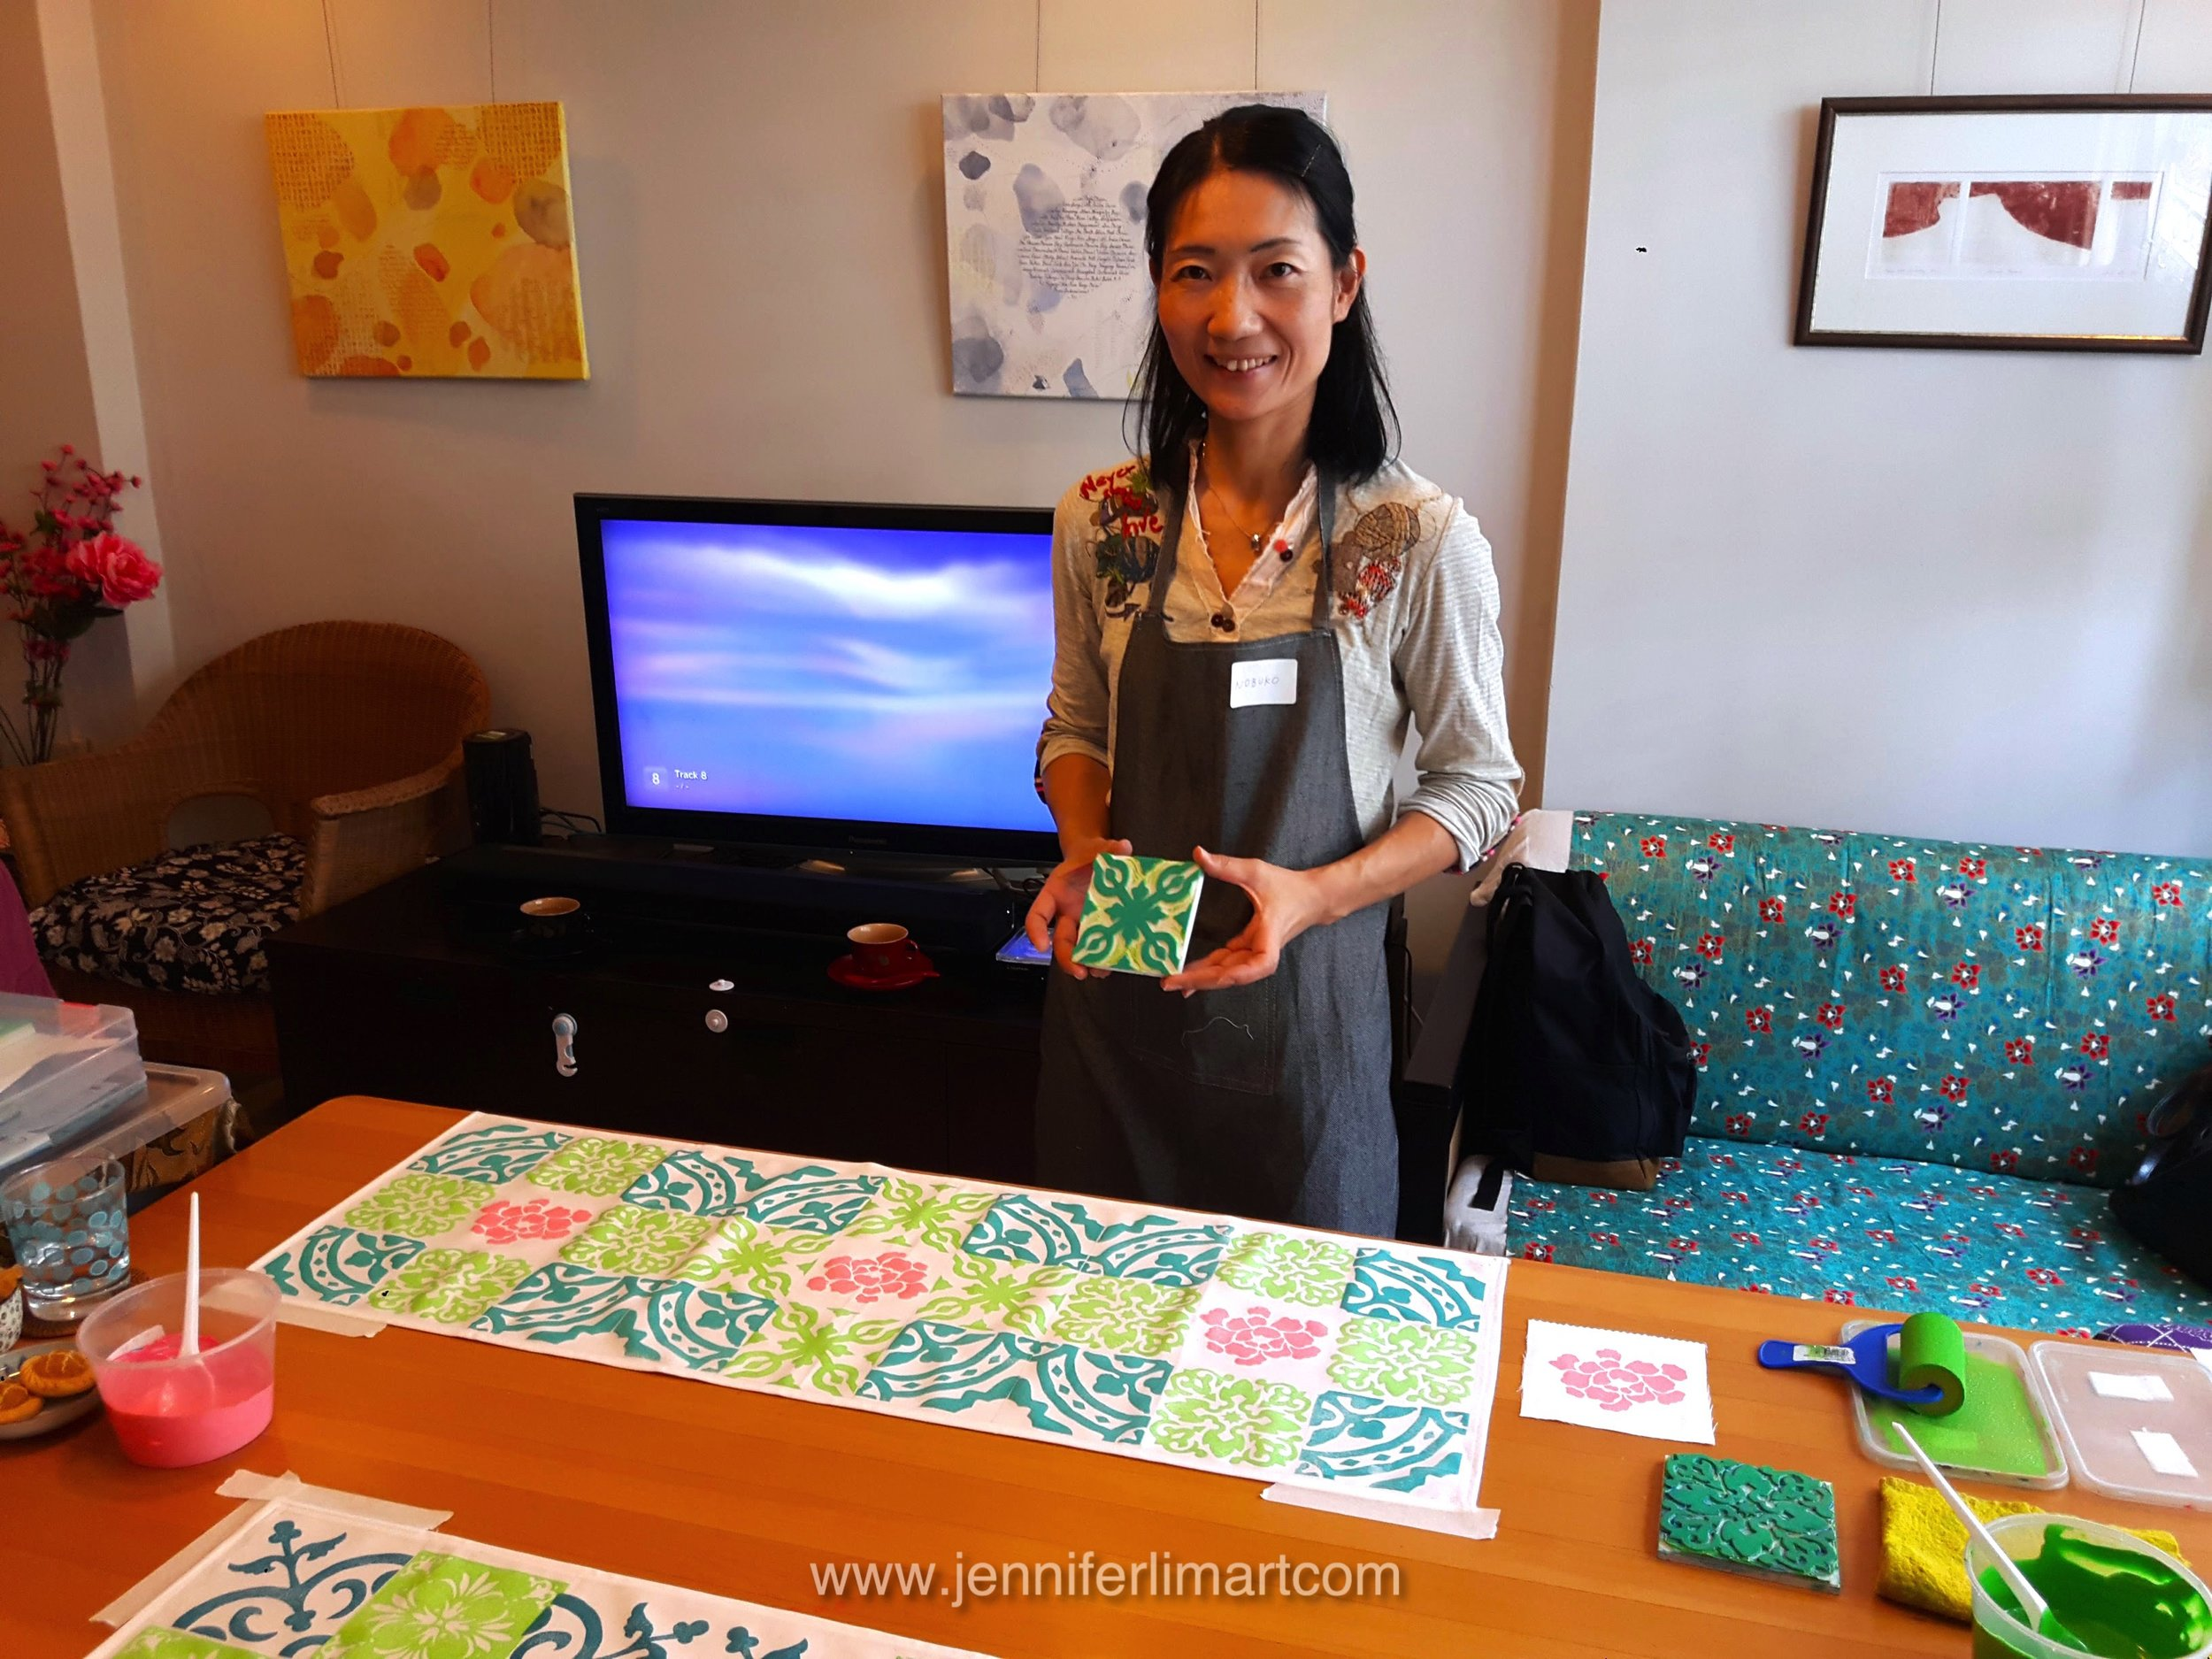 ws-singapore-jennifer-lim-art-printing-peranakan-chinese-new-year-170121-32-wm.jpg